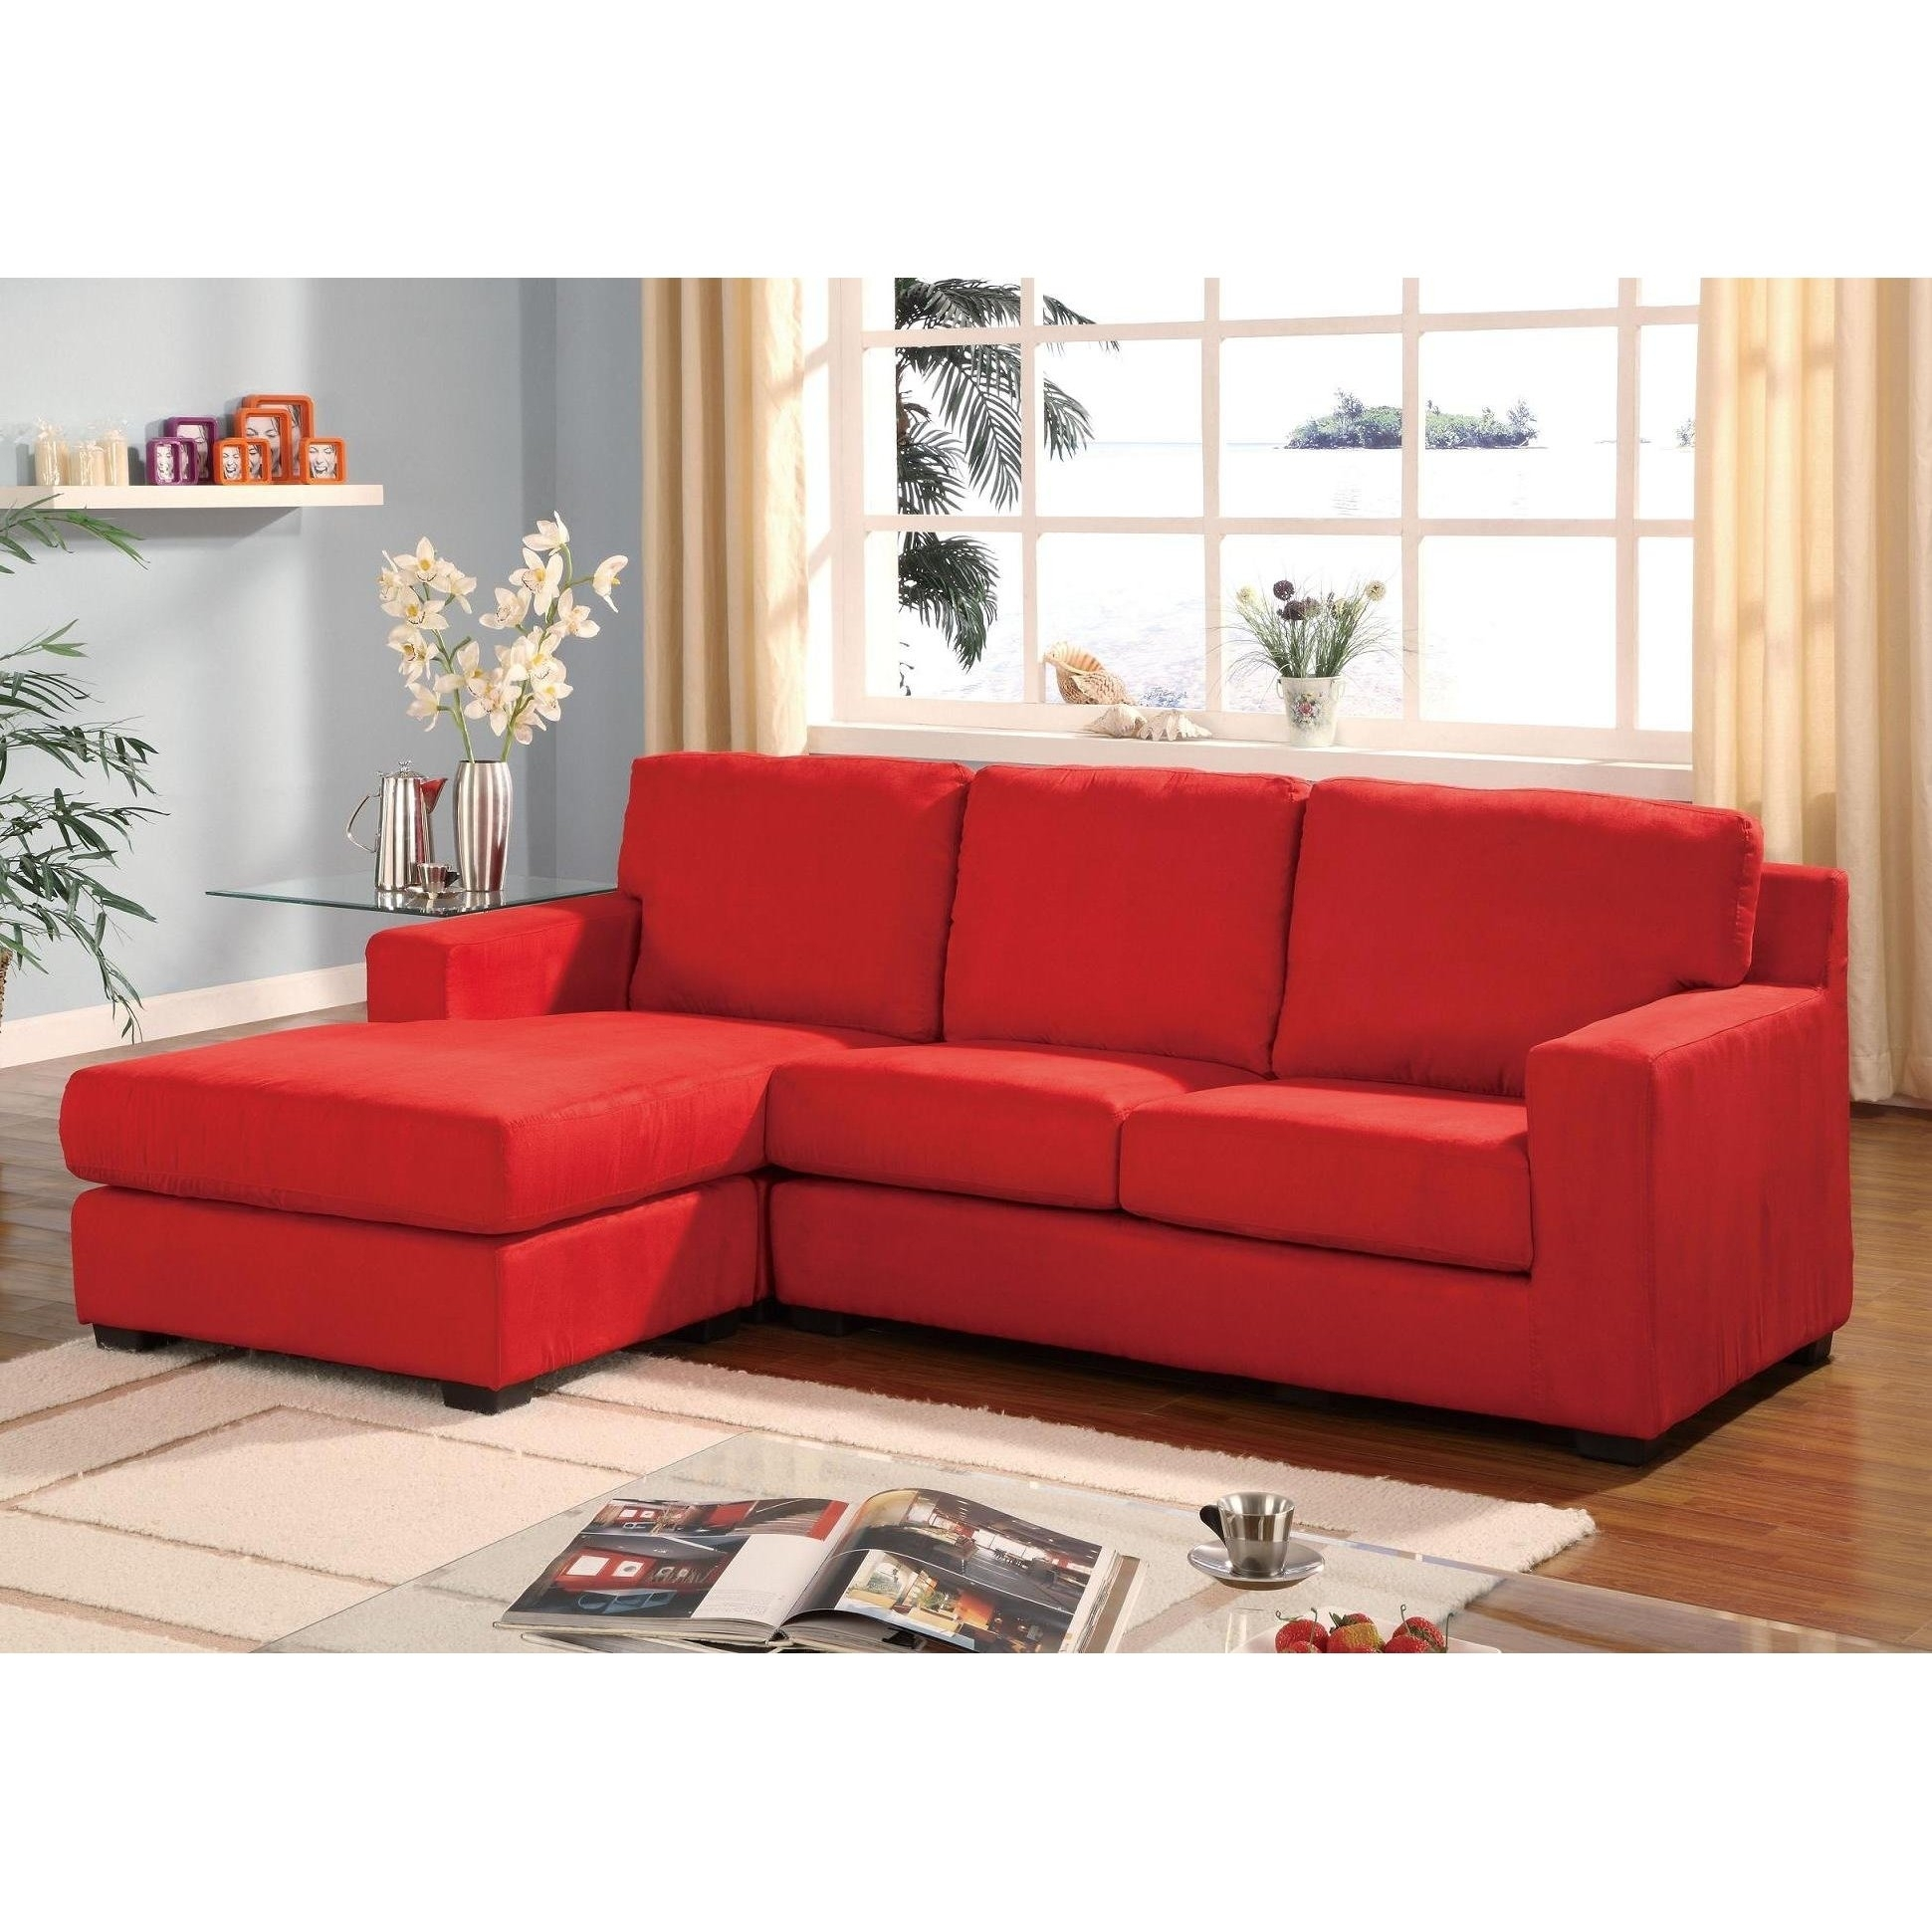 Sofas: Red Sectional Sofa | Reclining Sectional Sofas For Small Within Red Leather Sectionals With Chaise (View 8 of 10)